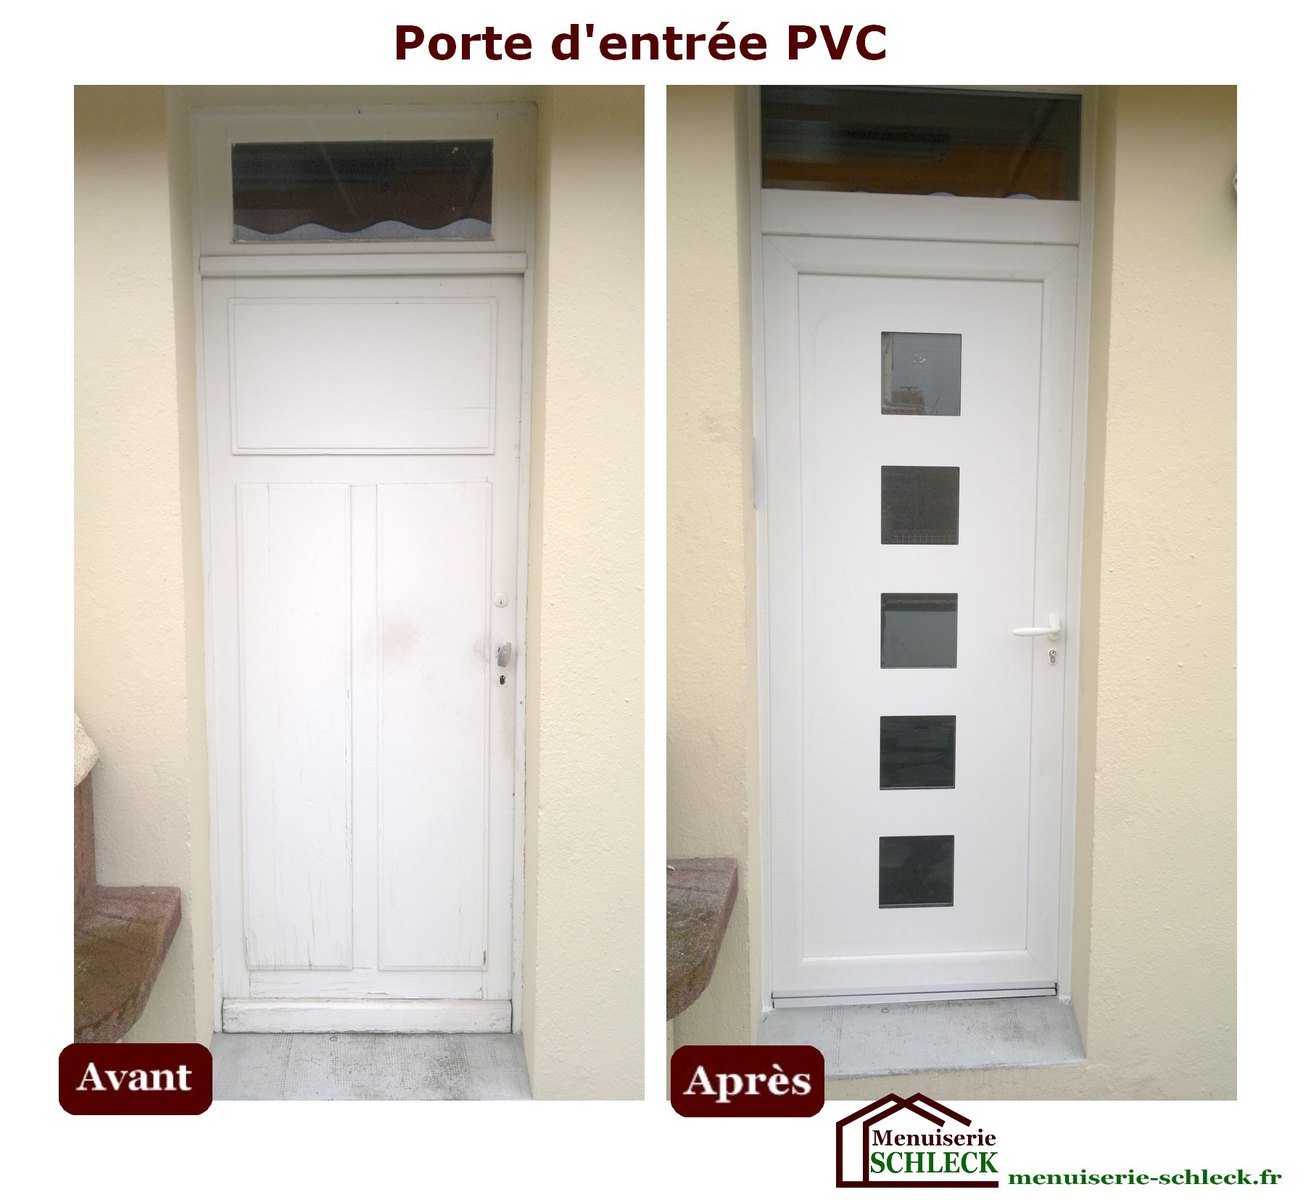 Comment poser une porte d 39 entr e en r novation la for Pose d une porte fenetre en renovation